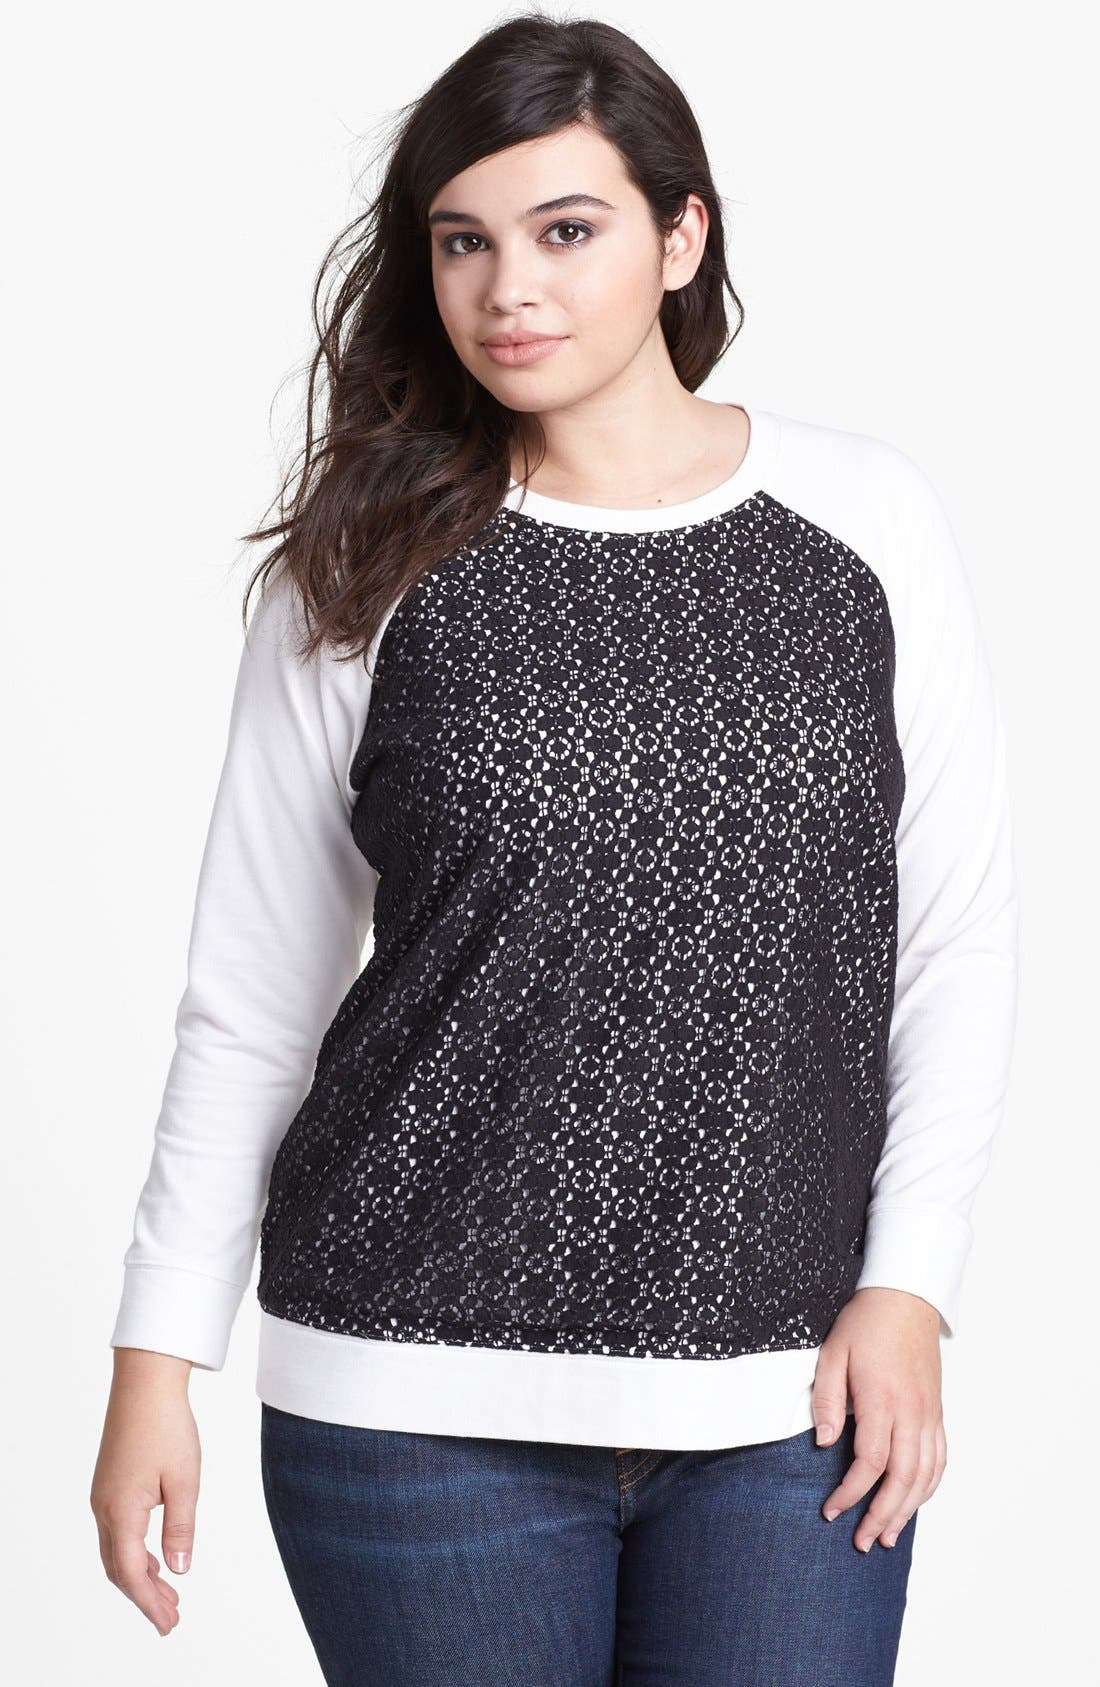 Alternate Image 1 Selected - Two by Vince Camuto Lace Panel Sweatshirt (Plus Size)